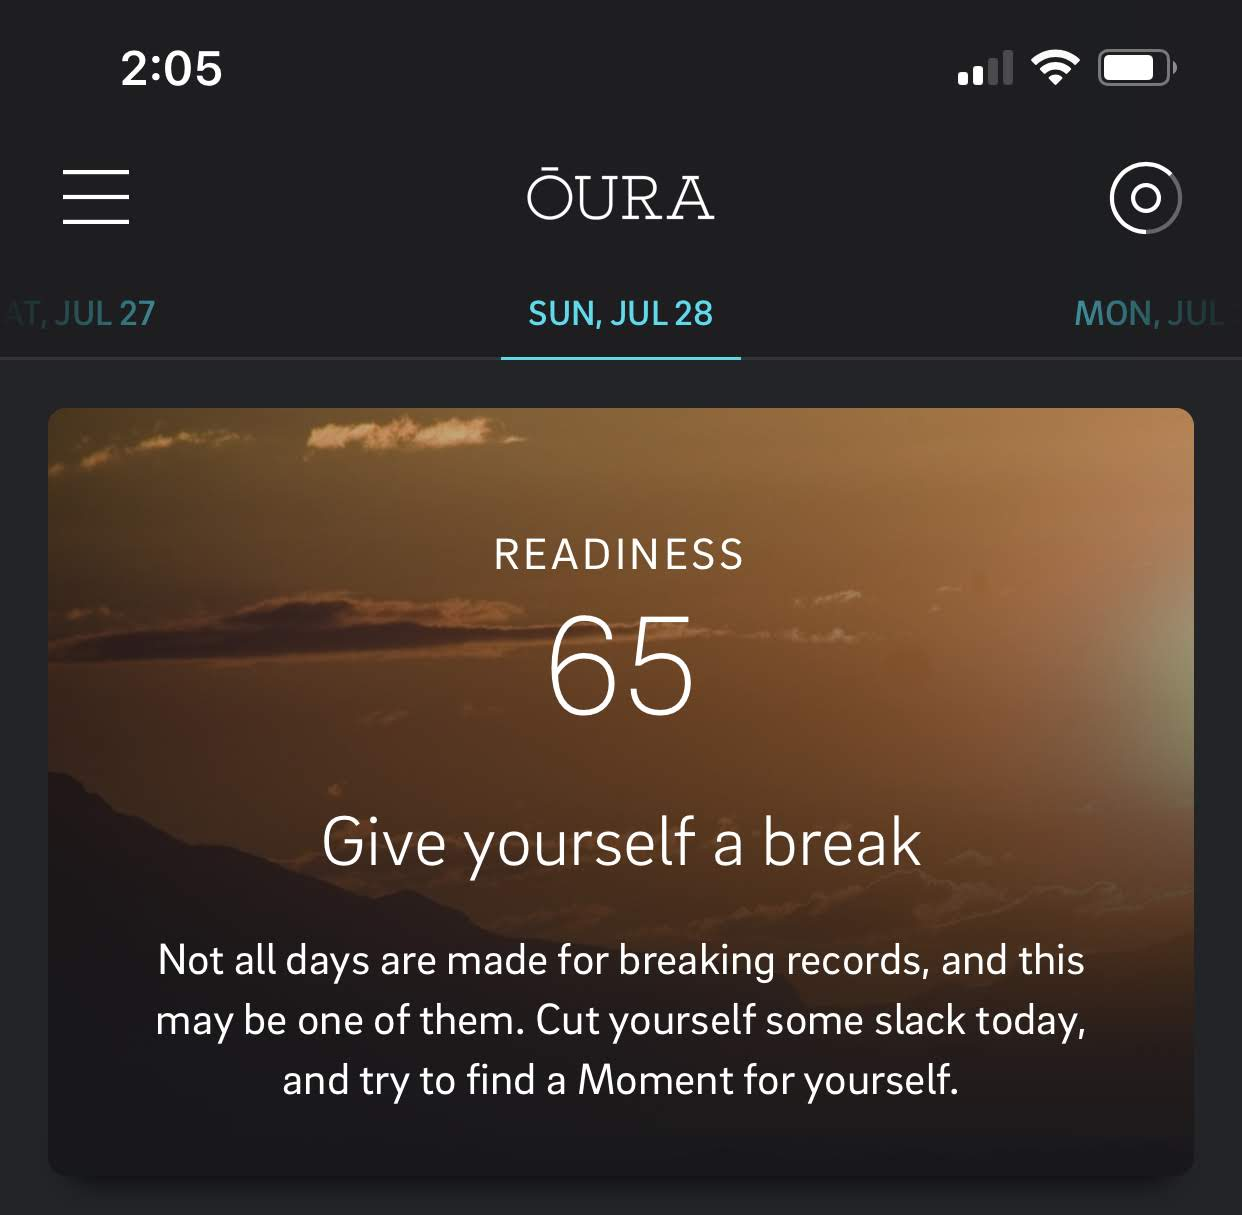 Oura take a break